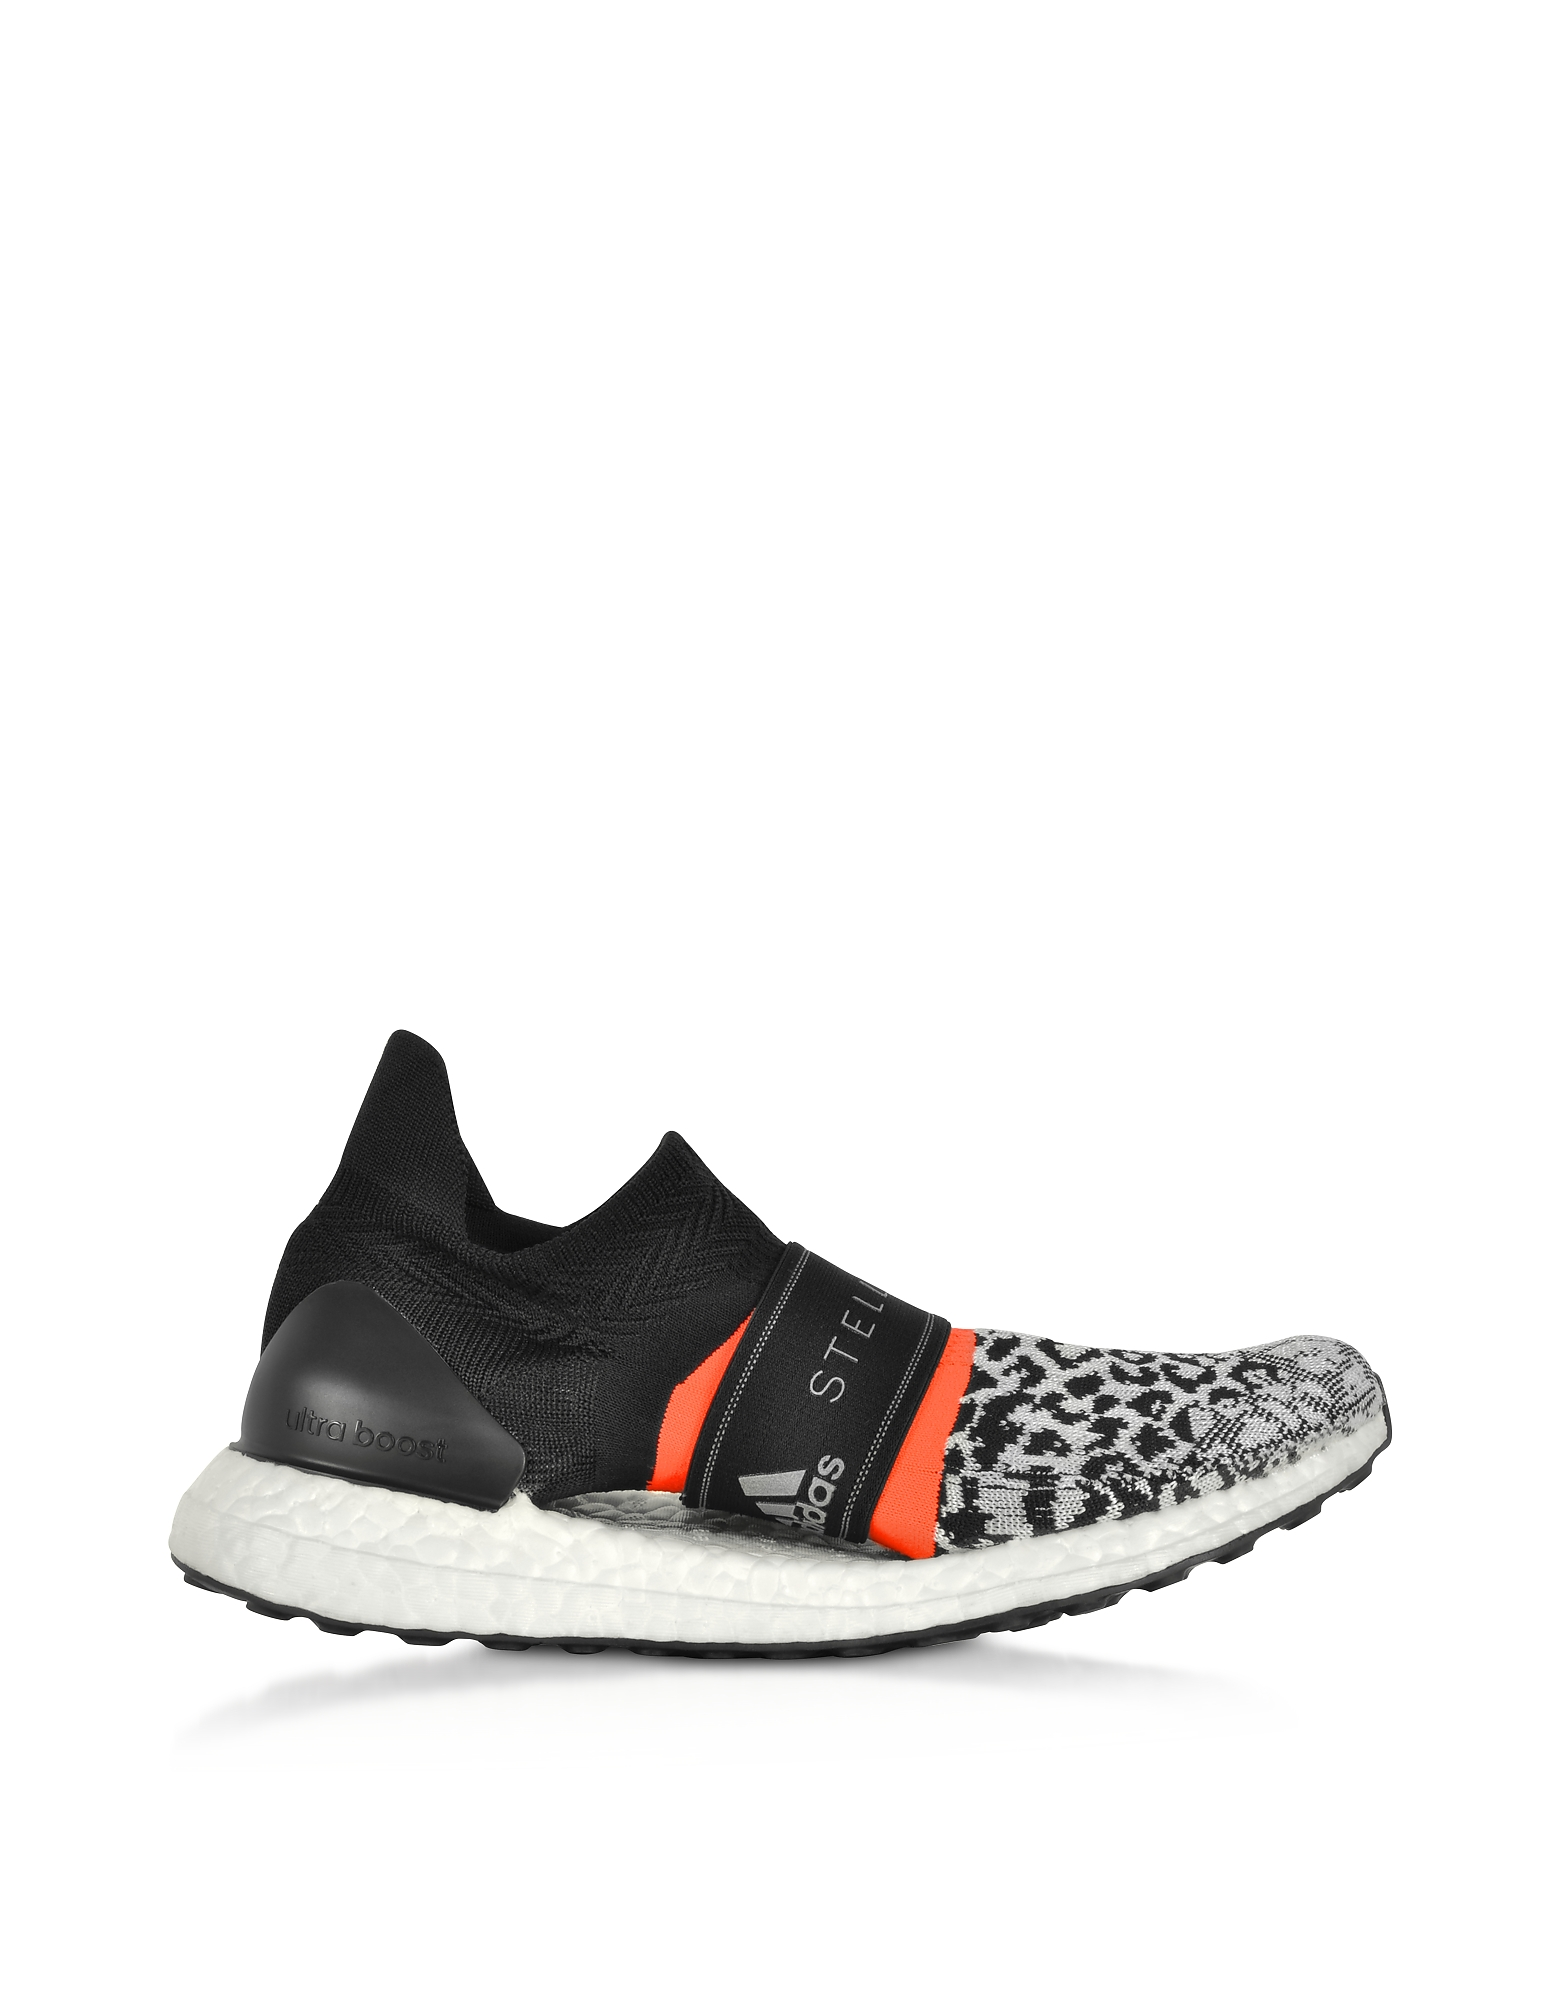 Ultraboost X 3.D Black and White Running Sneakers